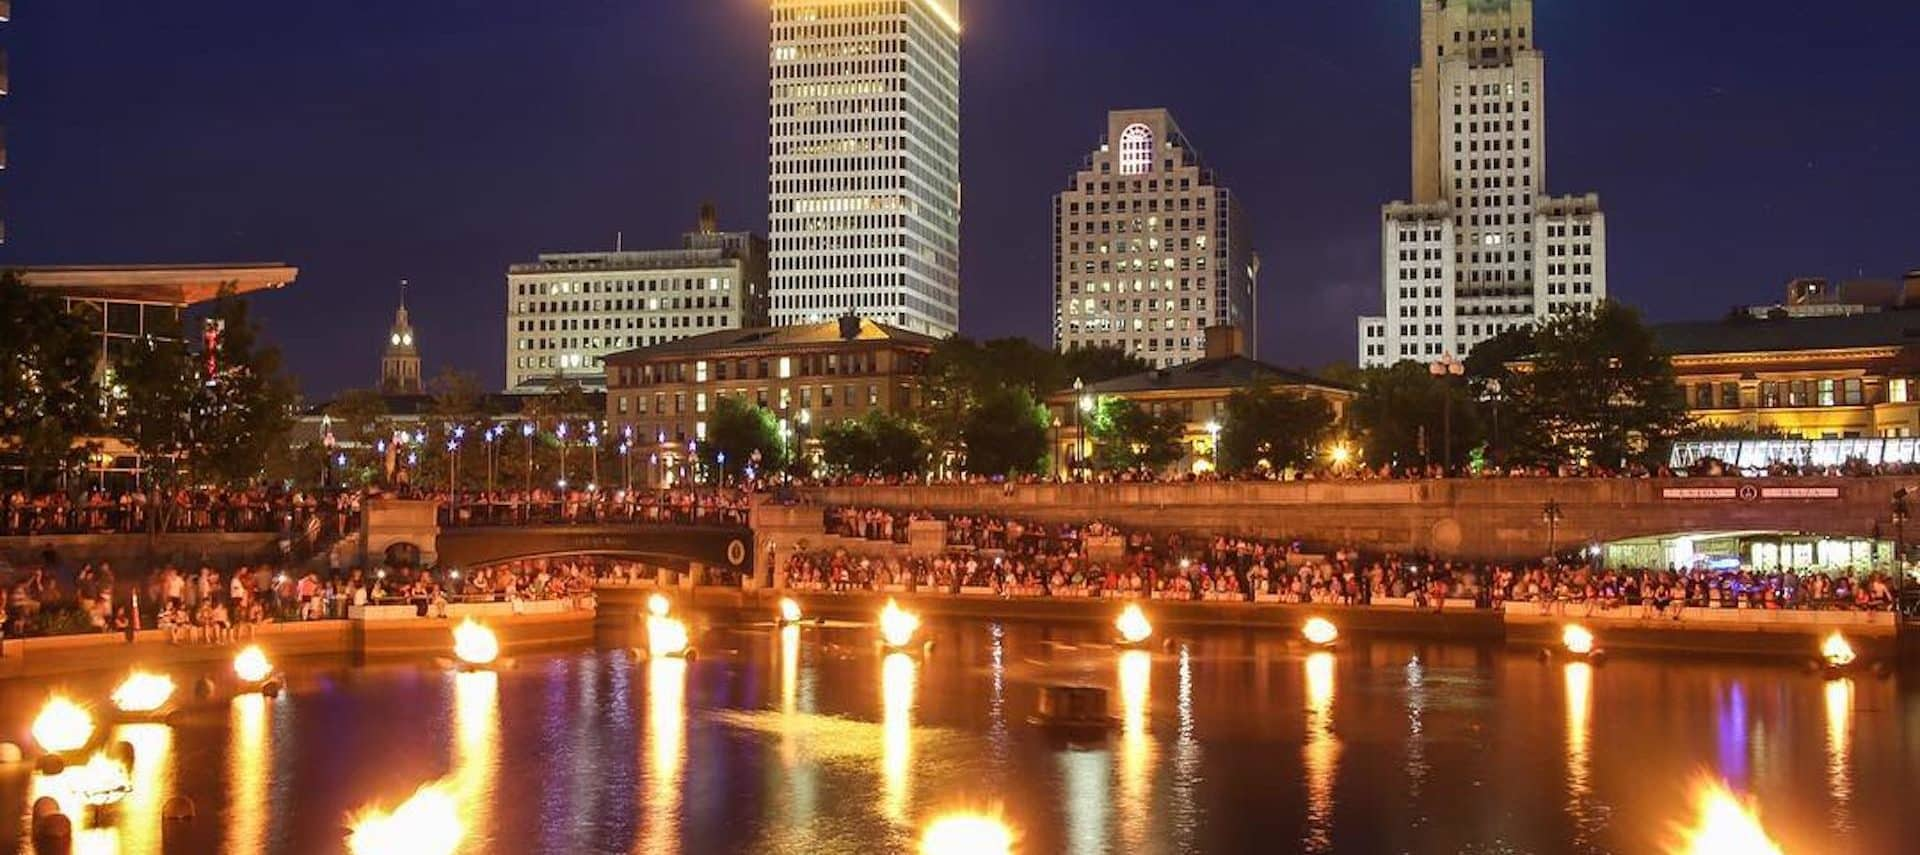 Braziers ignited on the river with the city of Providence in the backdrop.